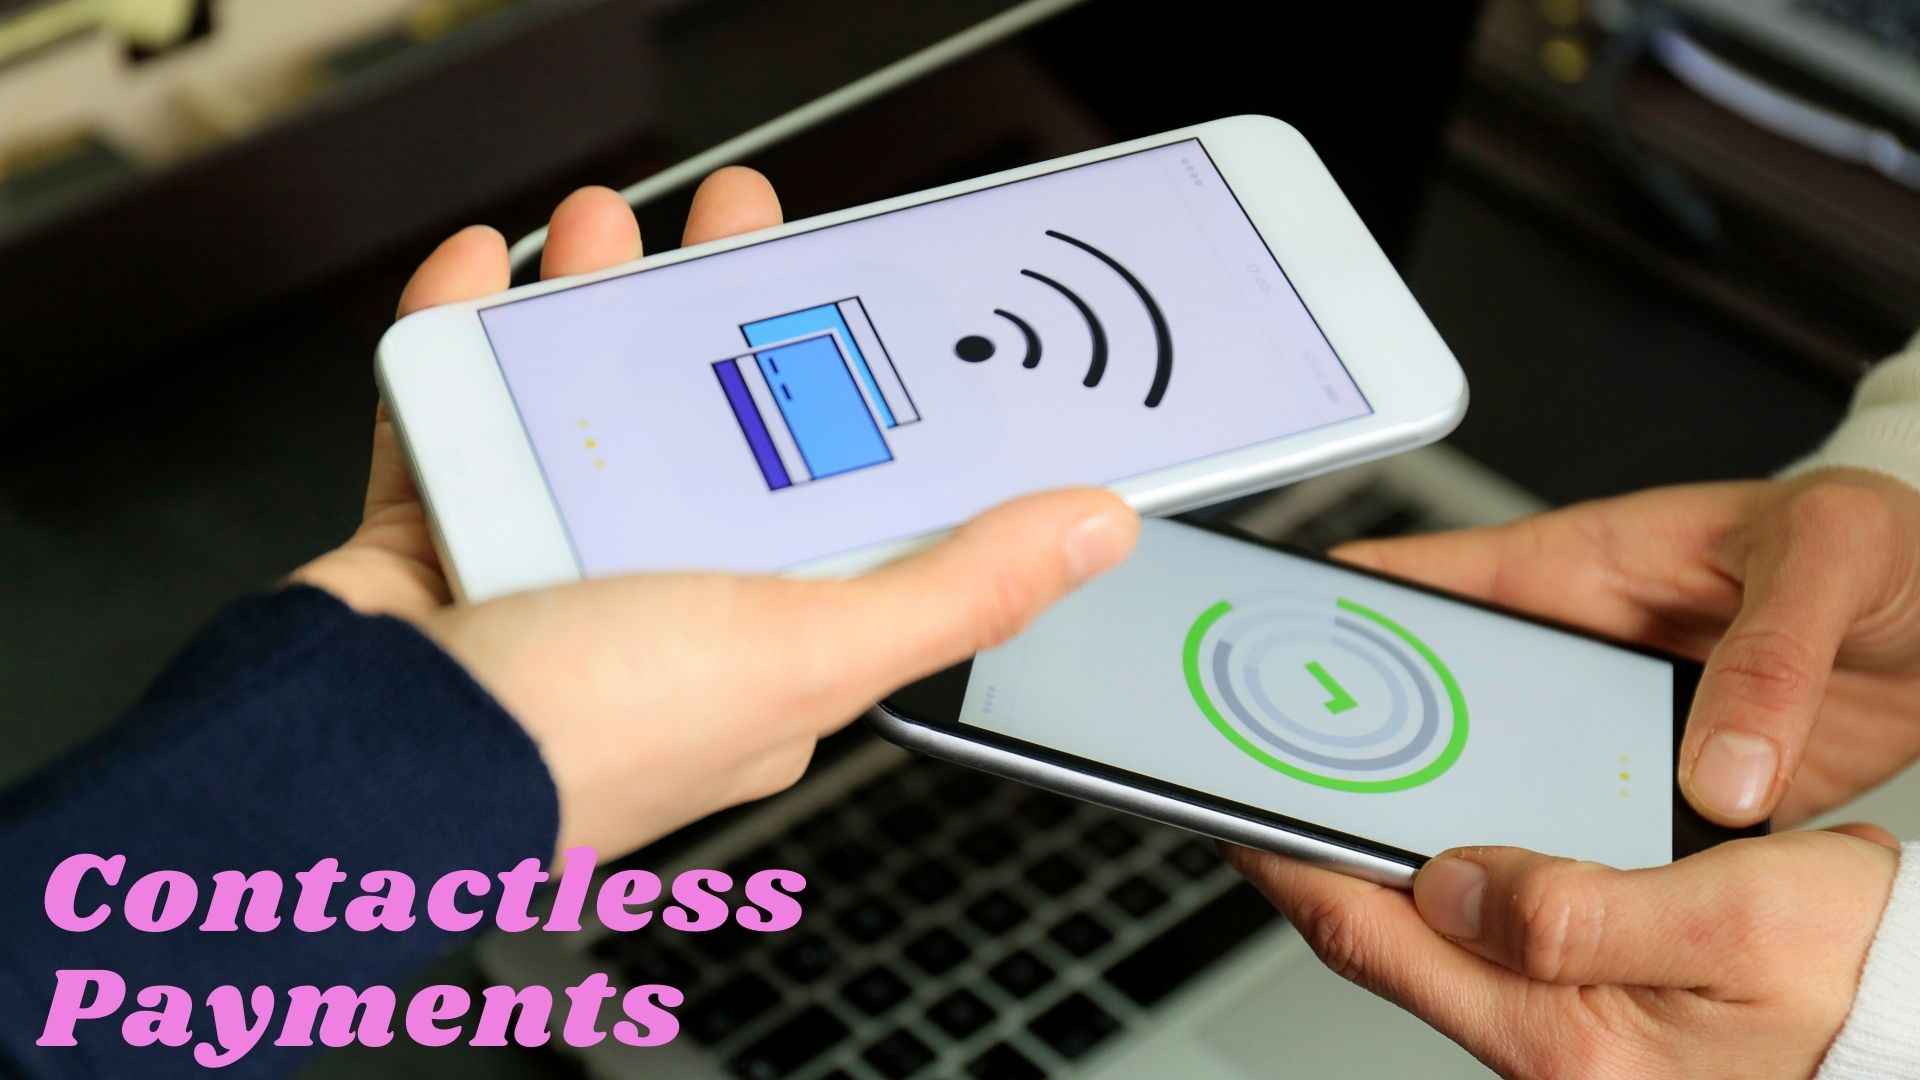 The Importance of EPOS and Contactless Payments in a Post-Pandemic World